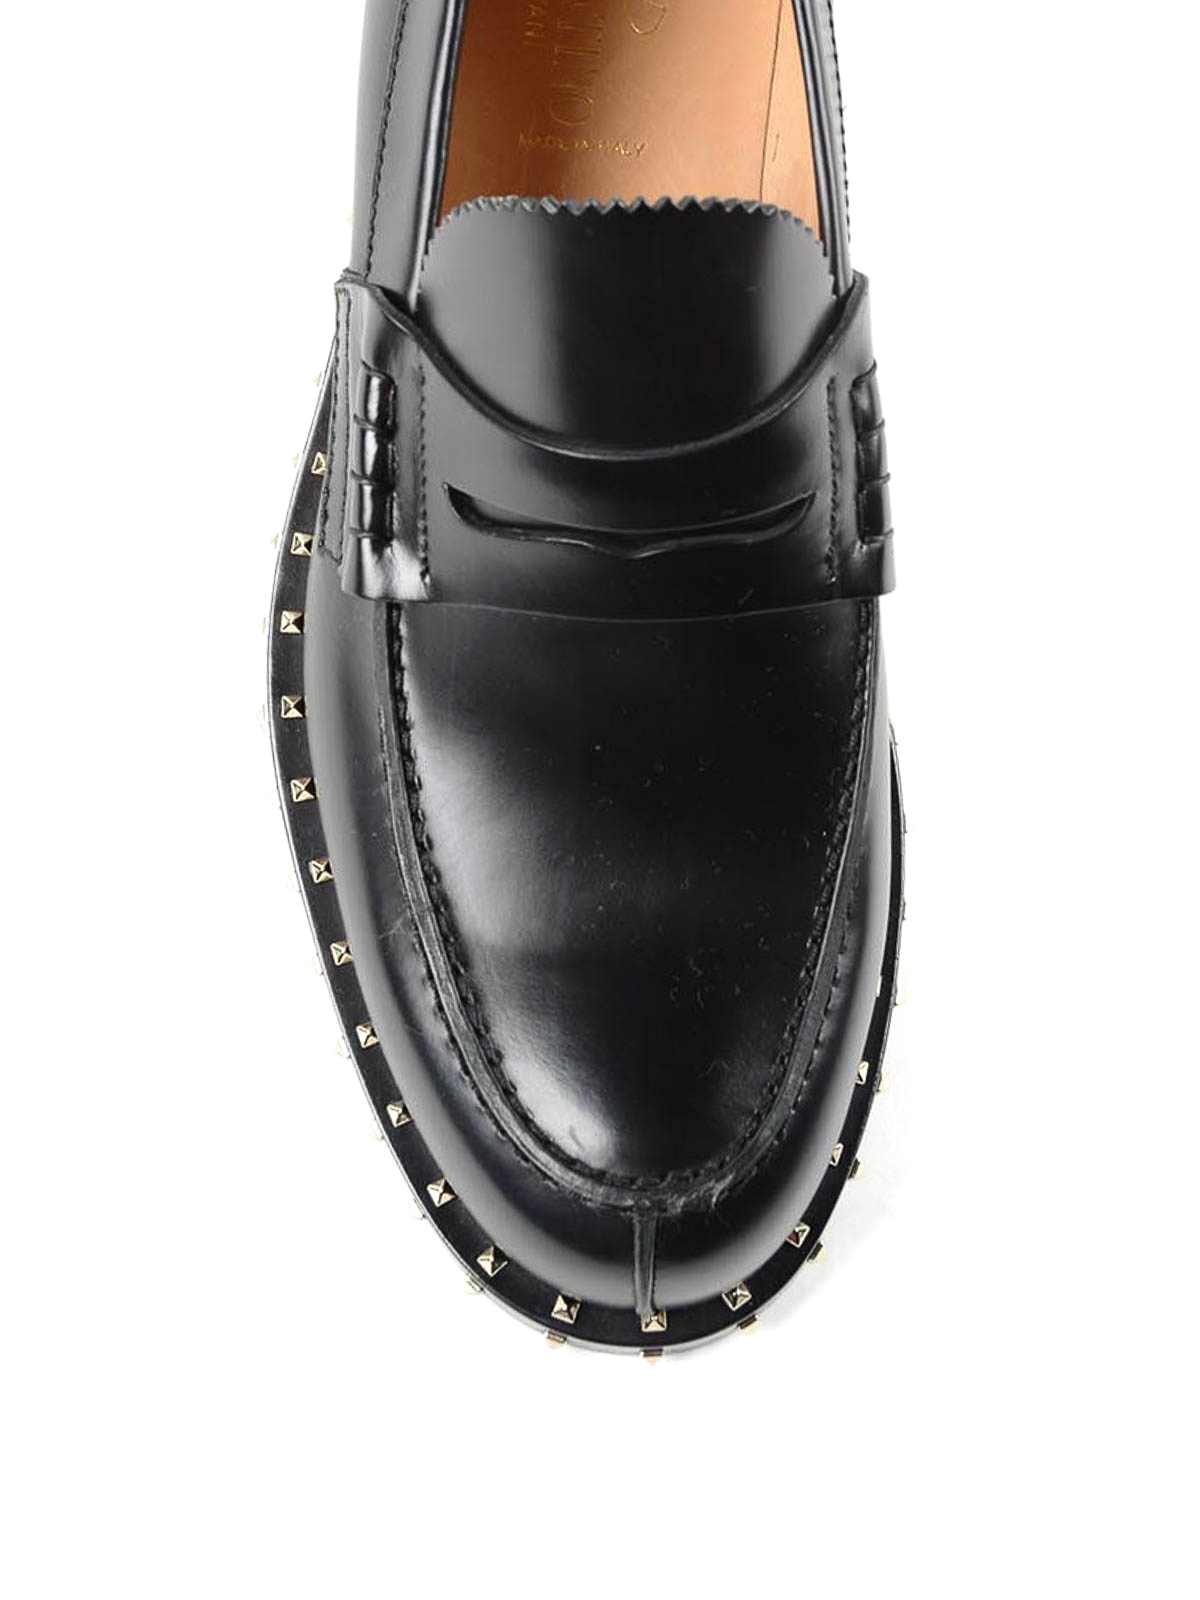 c5a4a51063f8c Valentino Garavani - Rockstud leather penny loafers - Loafers ...